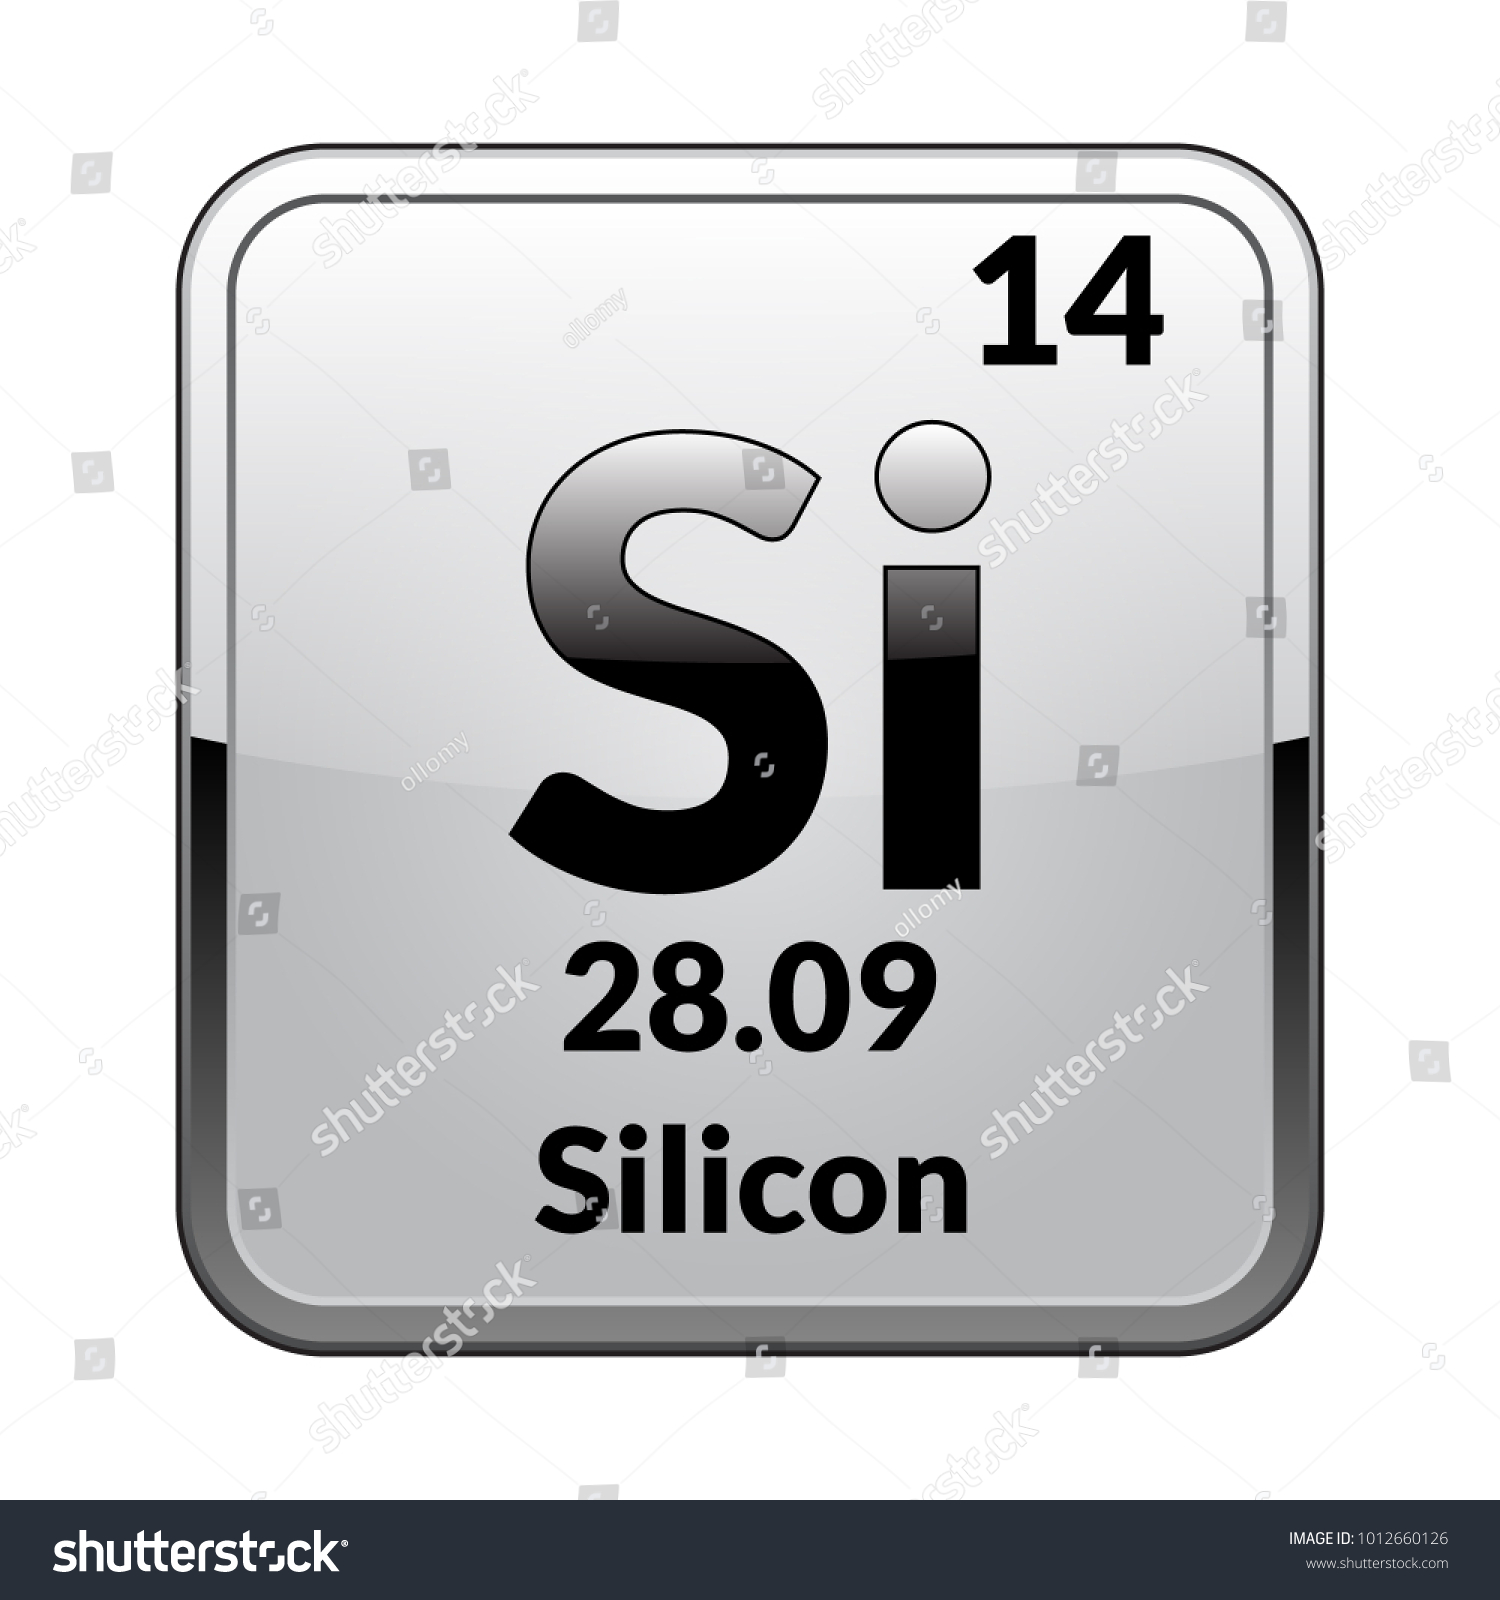 Silicon Symbolemical Element Of The Periodic Table On A Glossy